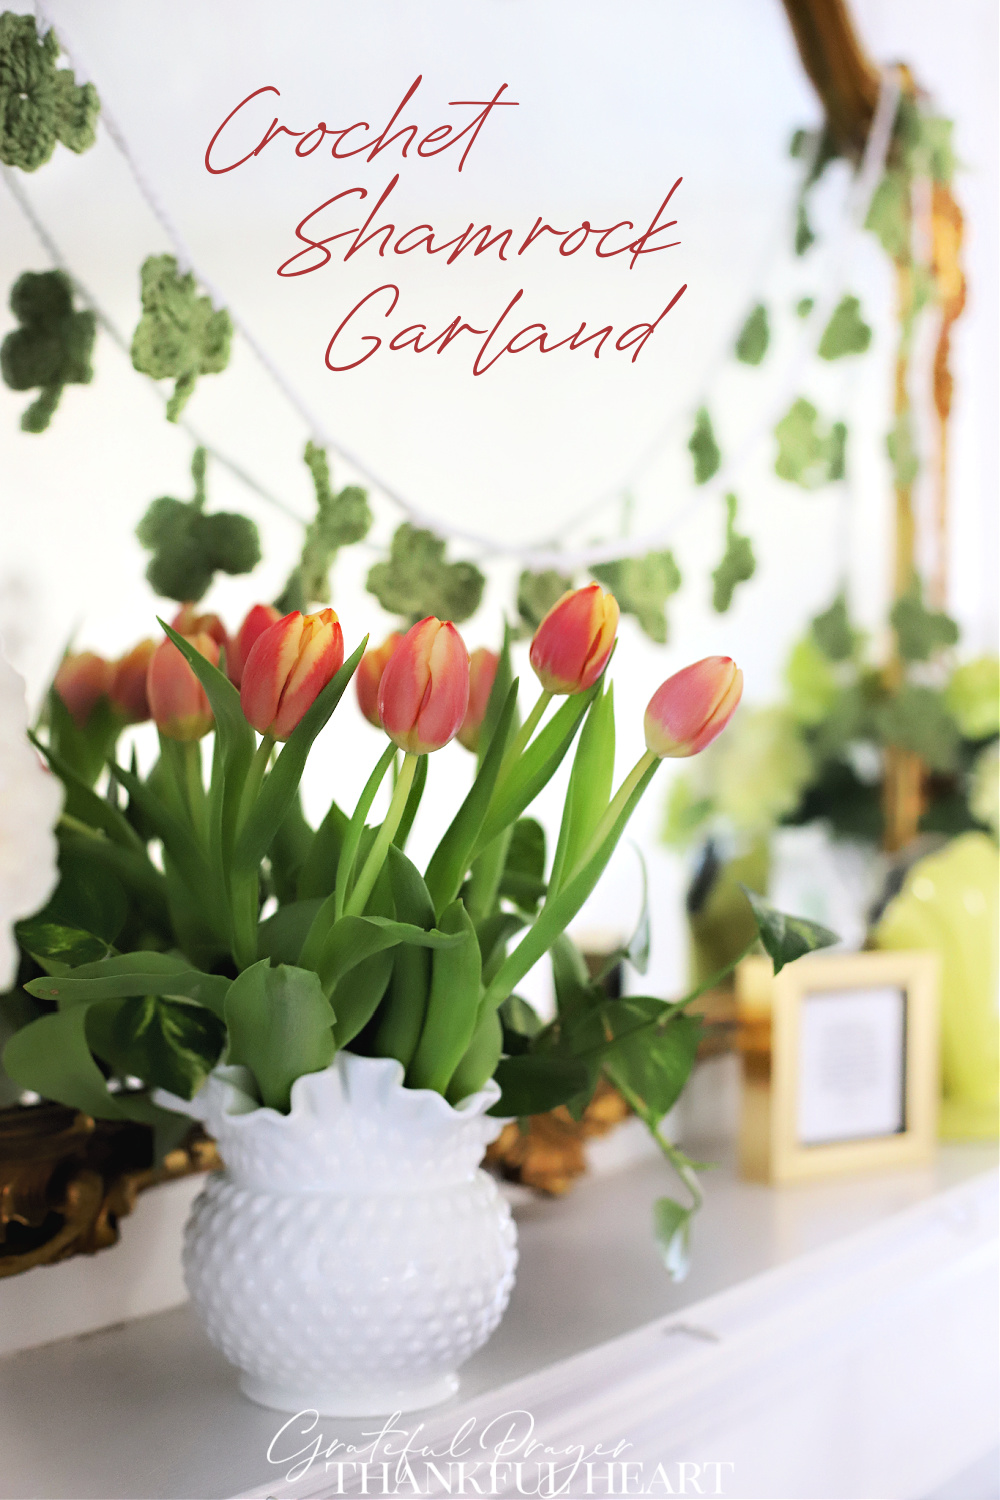 Easy pattern for a sweet St Patrick's Day garland. Crochet shamrock garland can be used as a swag on the mantle, over a mirror or window.